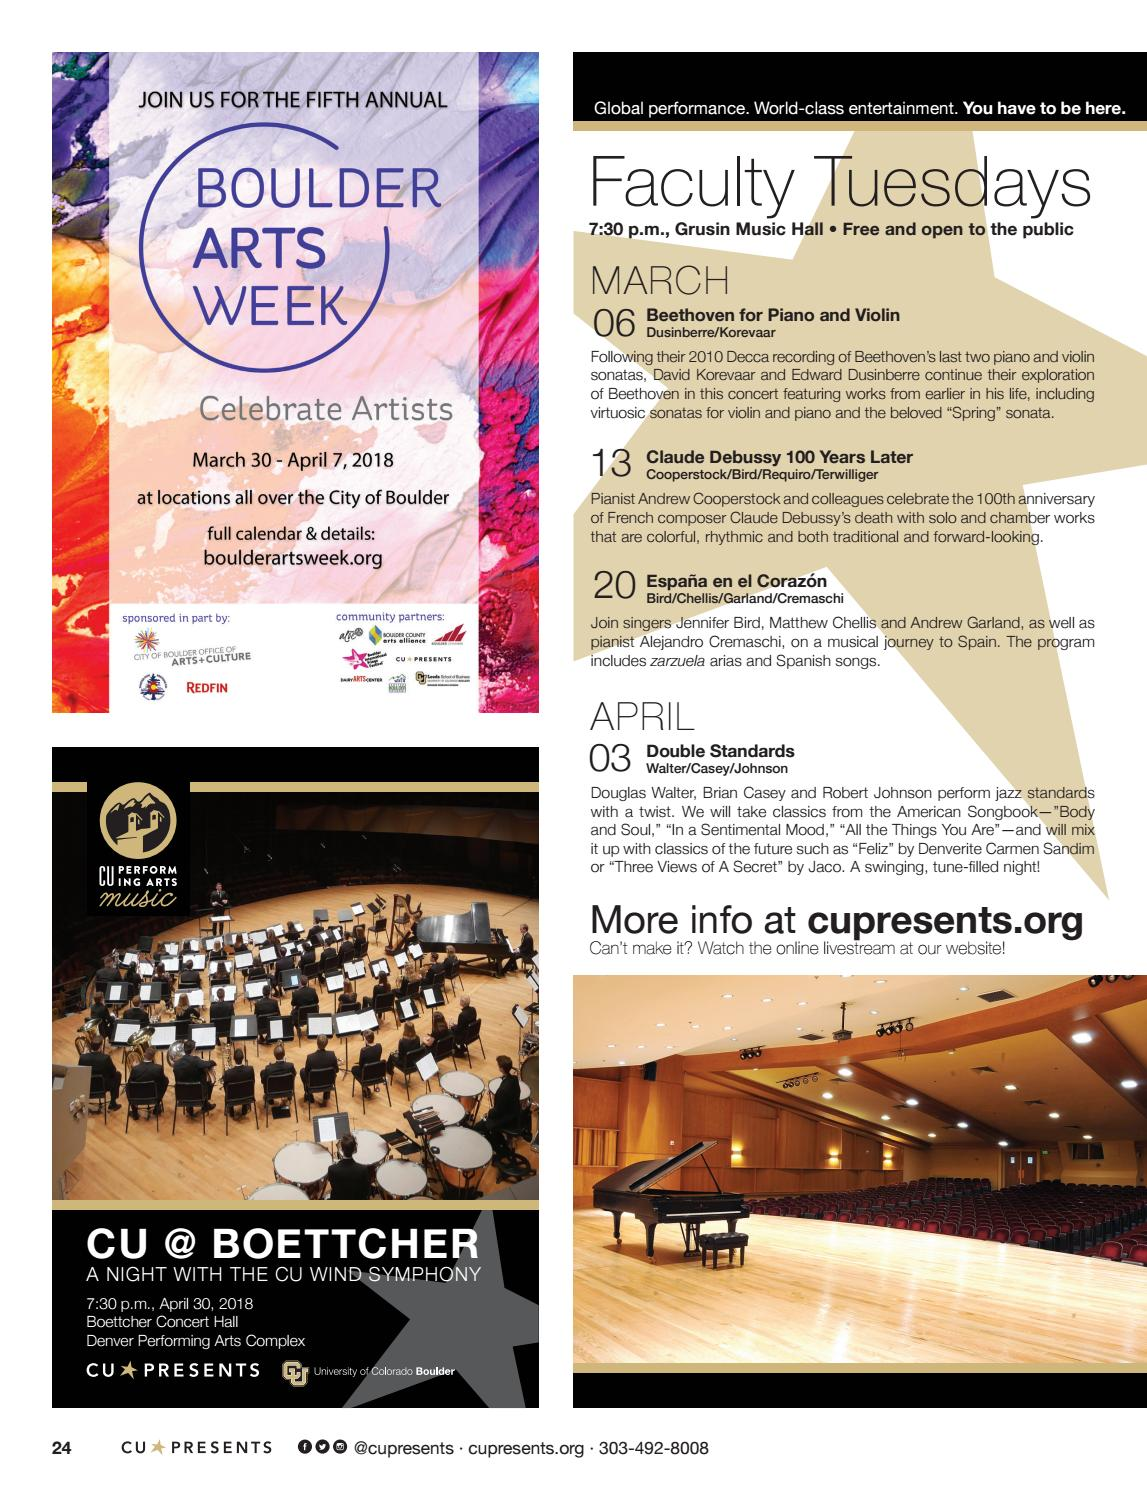 CU Presents Magazine Winter 2018, March 24, 2018 by The